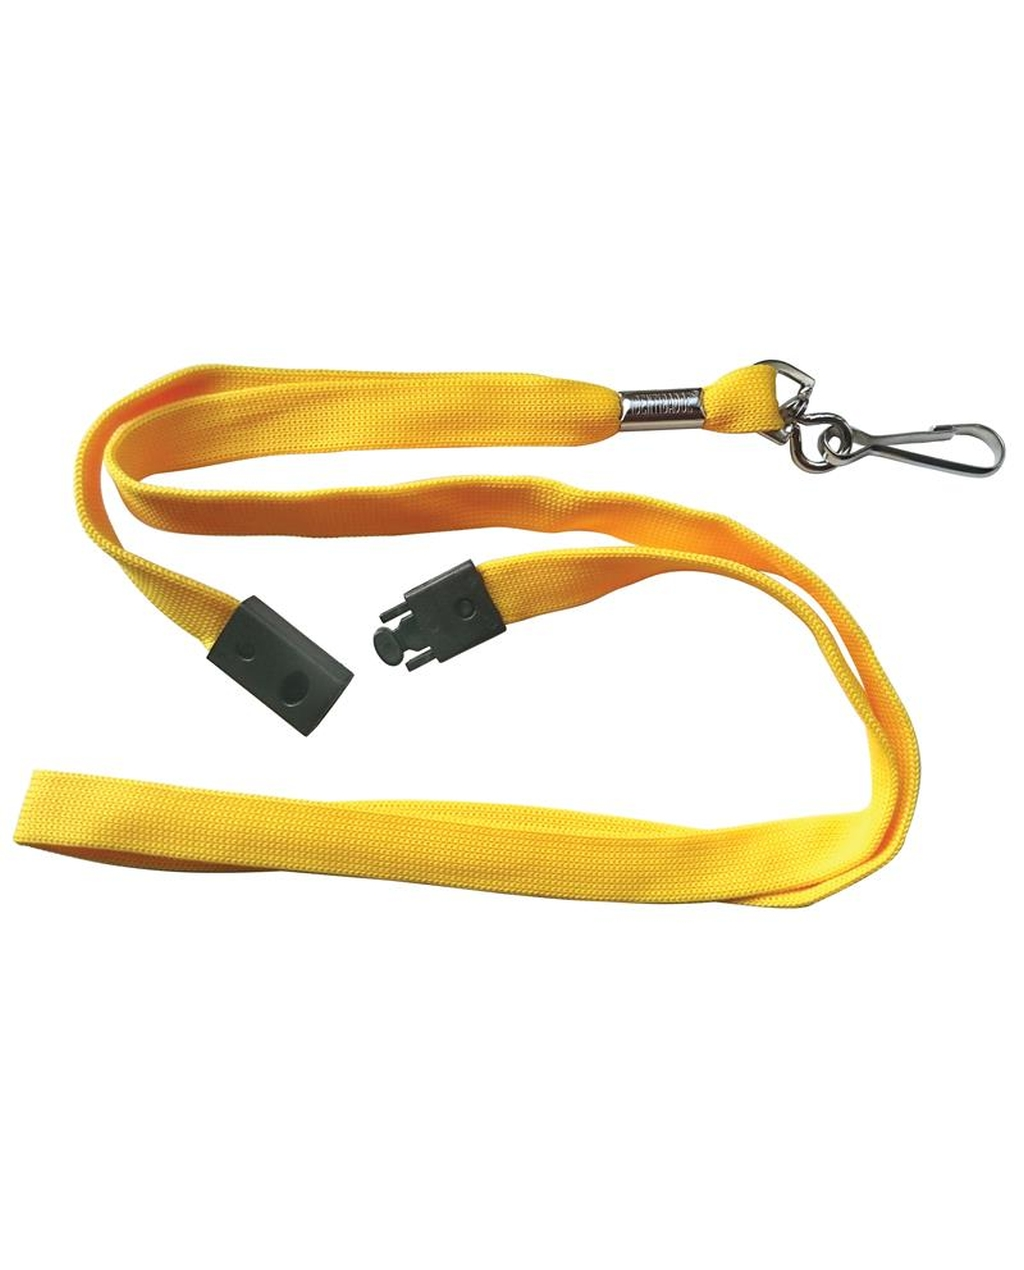 10 Breakaway Lanyards - Yellow